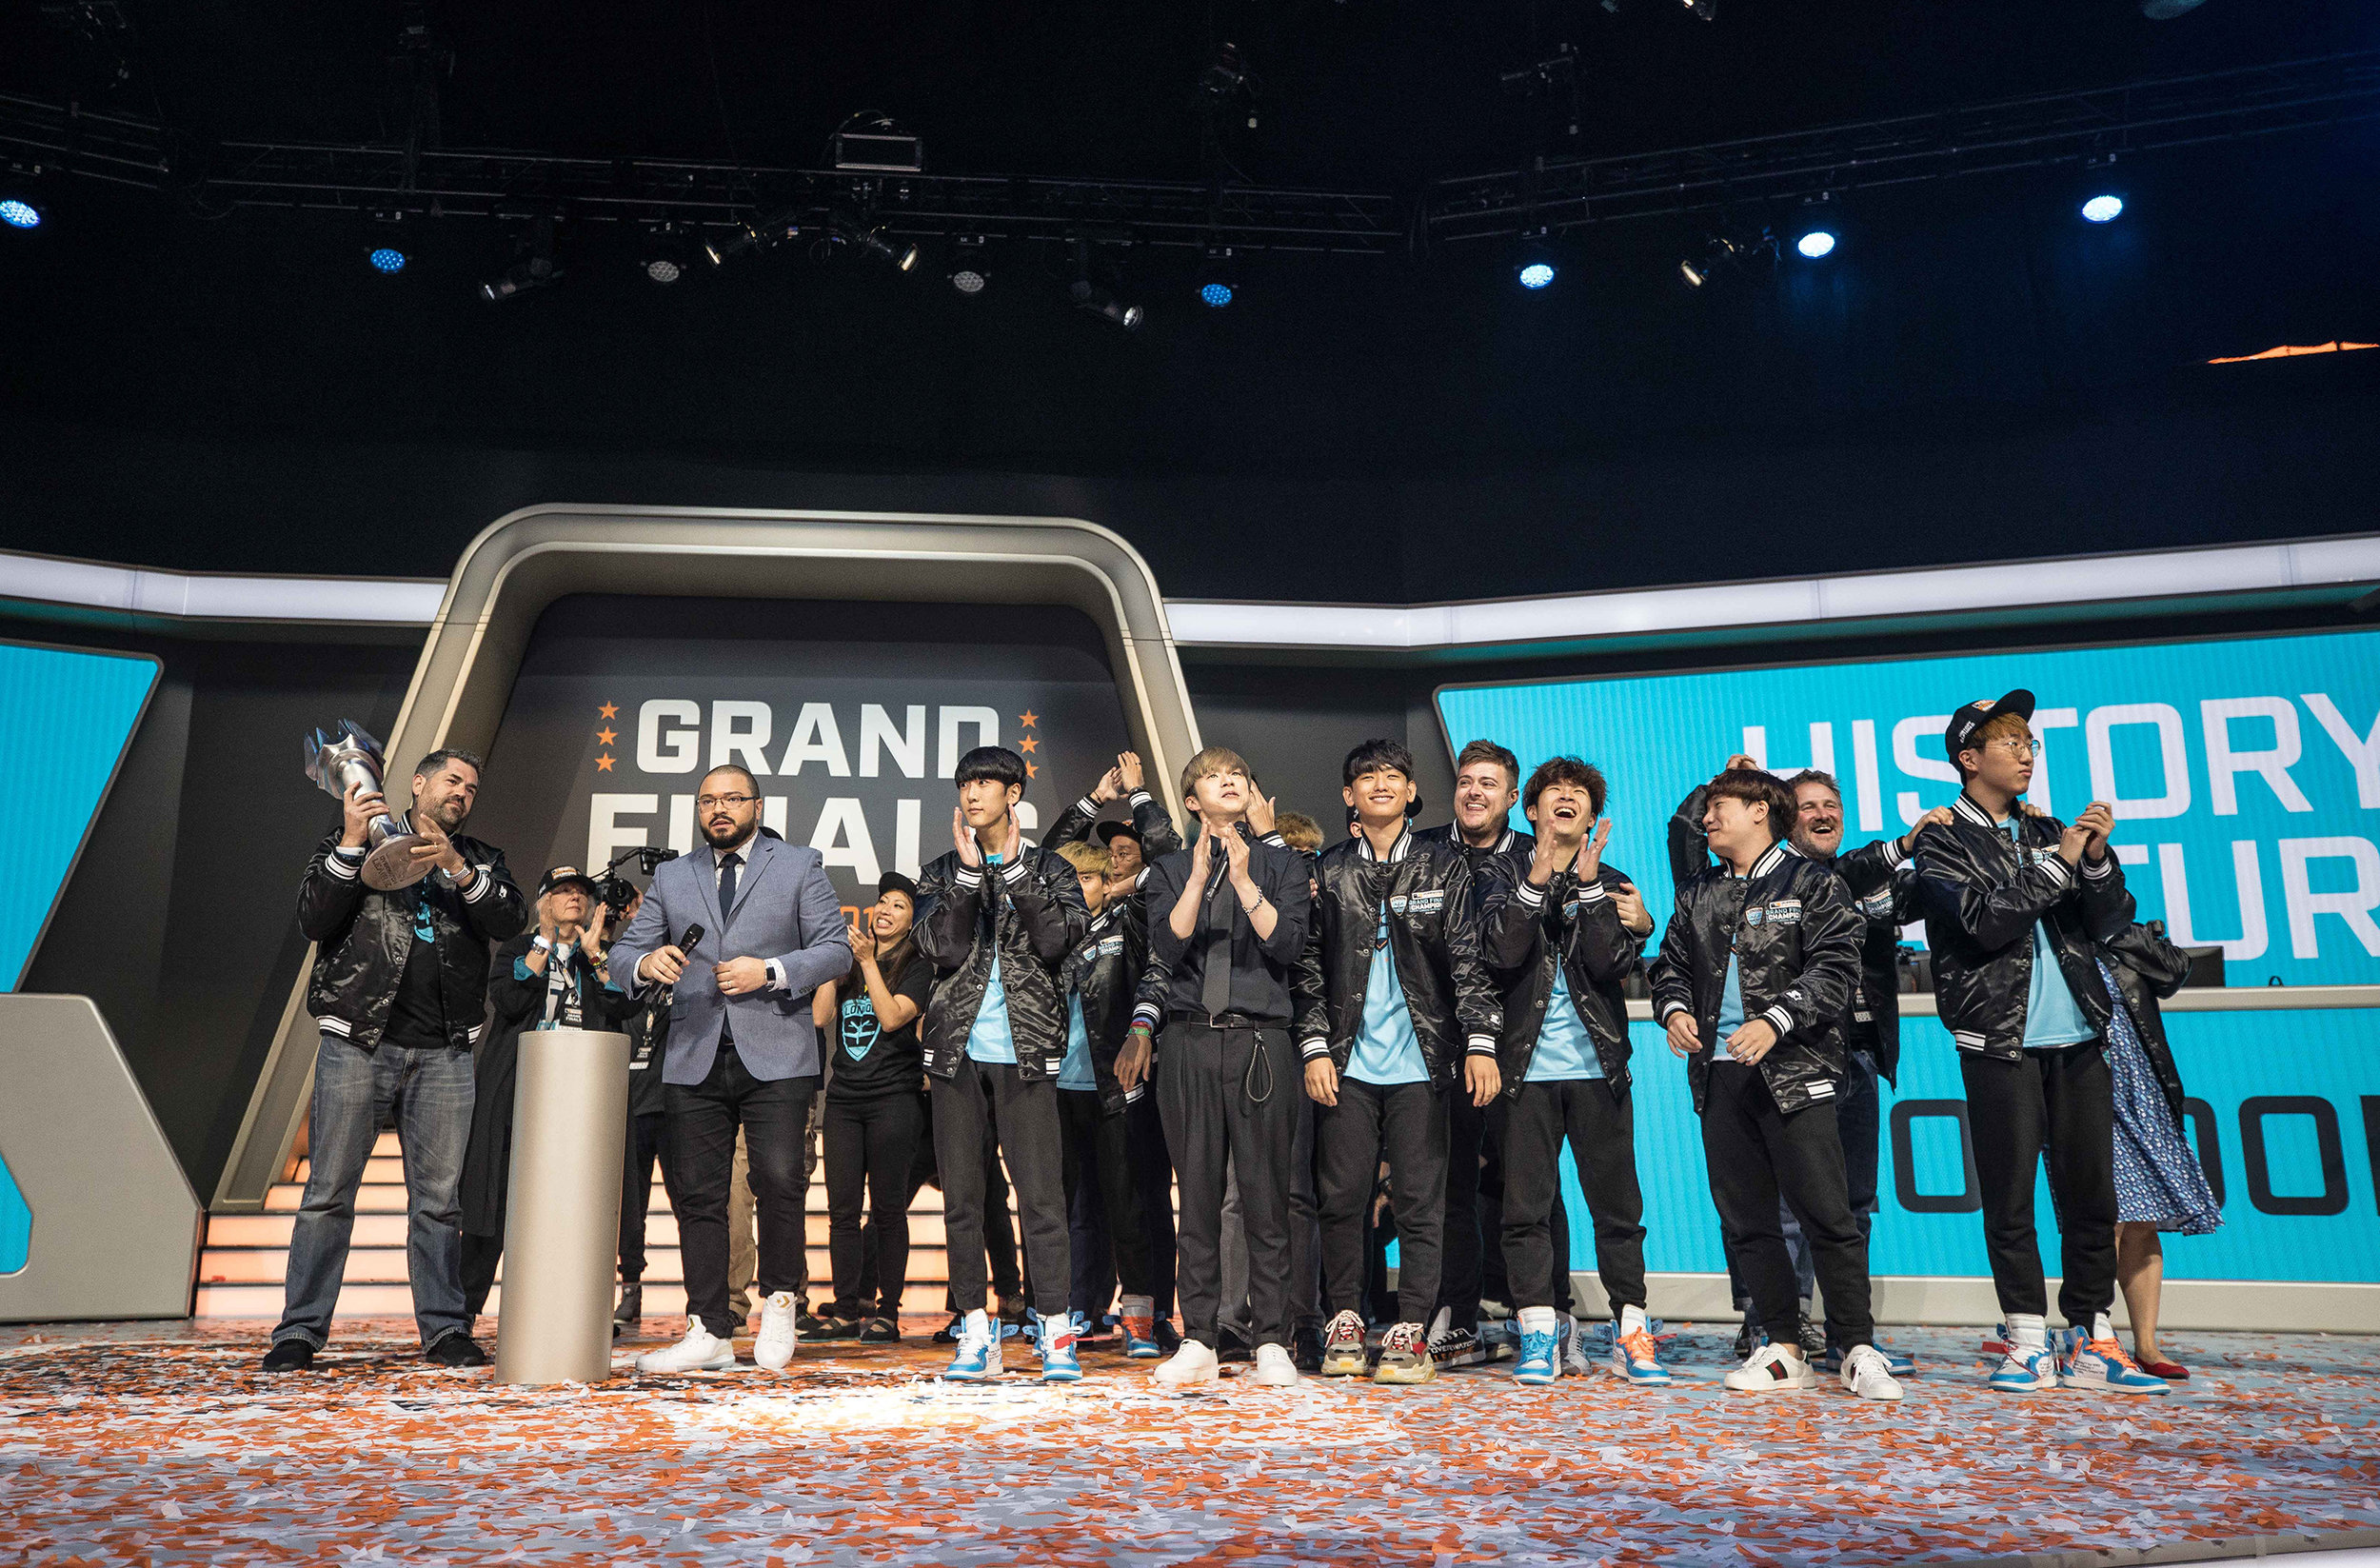 Overwatch League Grand Finals, entire London Spitfire team acknowledges fans after winning final over Philadelphia Fusion at Barclays Center on July 27, 2018 in Brooklyn, New York.  Photo by Hannah Smith / ESPAT Media